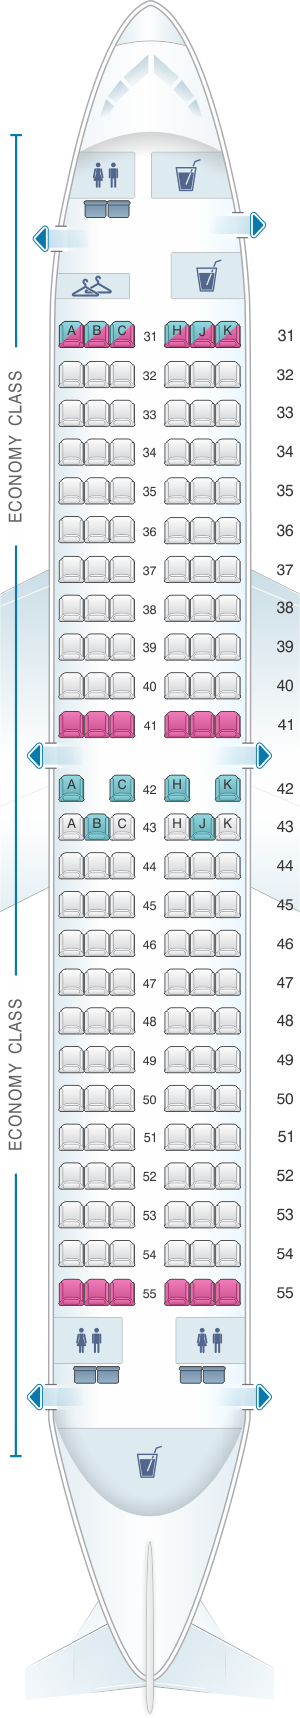 Seat map for Hainan Airlines Boeing B737 700